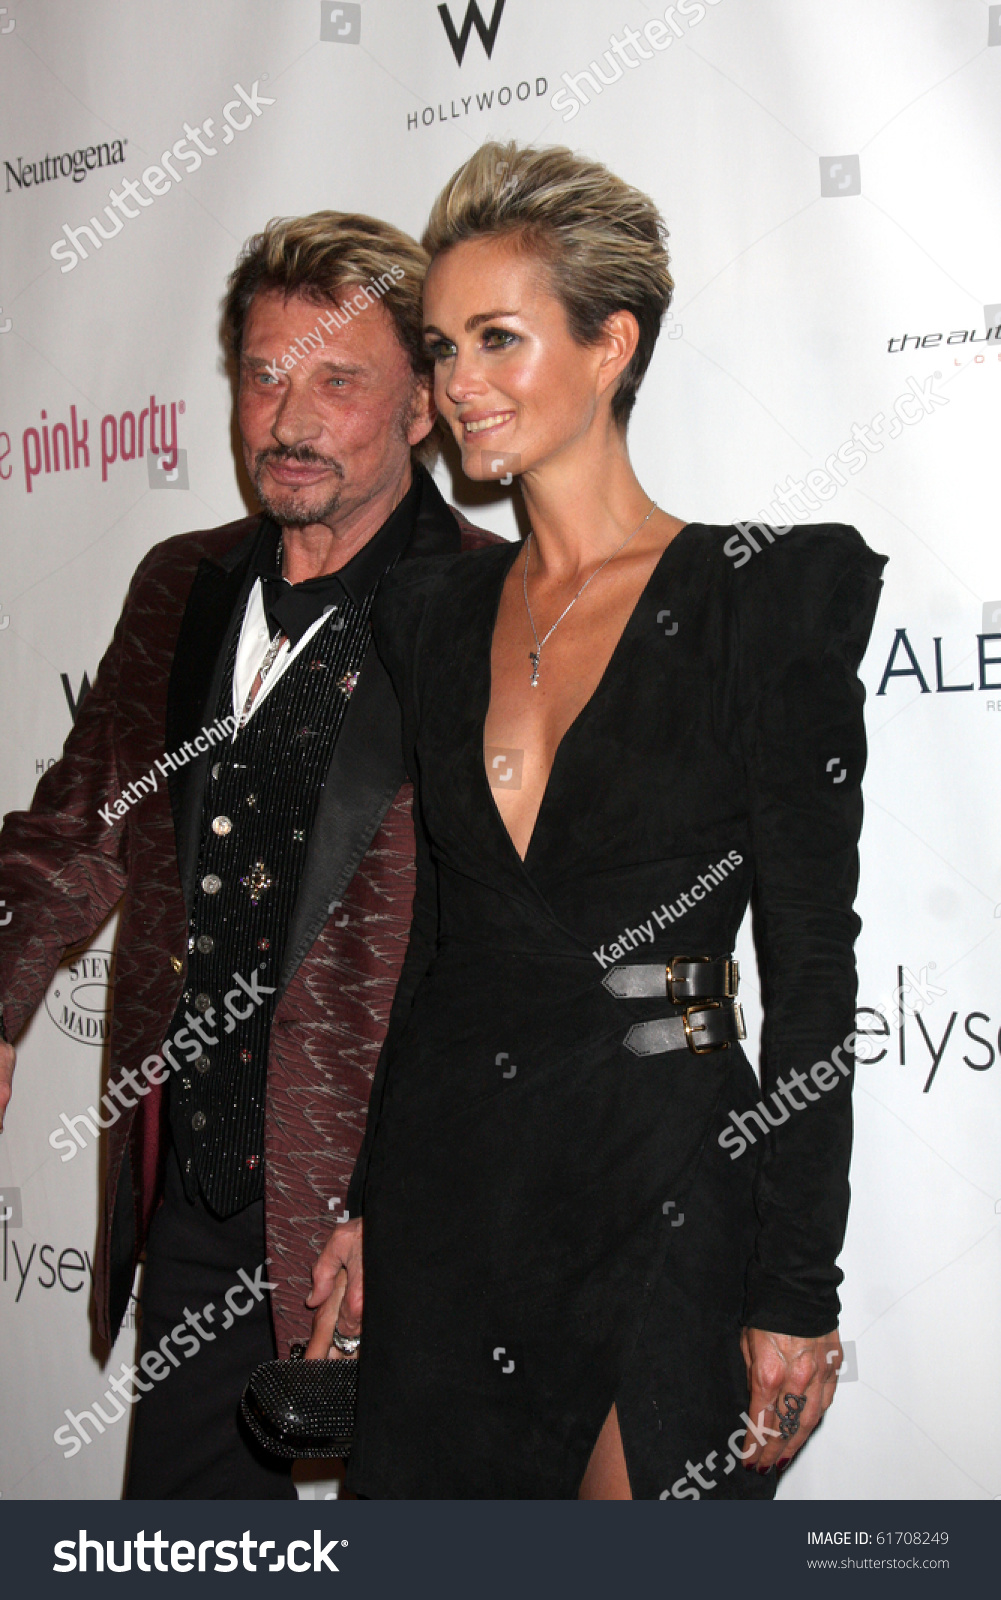 Young L?ticia Hallyday nudes (35 foto and video), Tits, Cleavage, Selfie, braless 2006